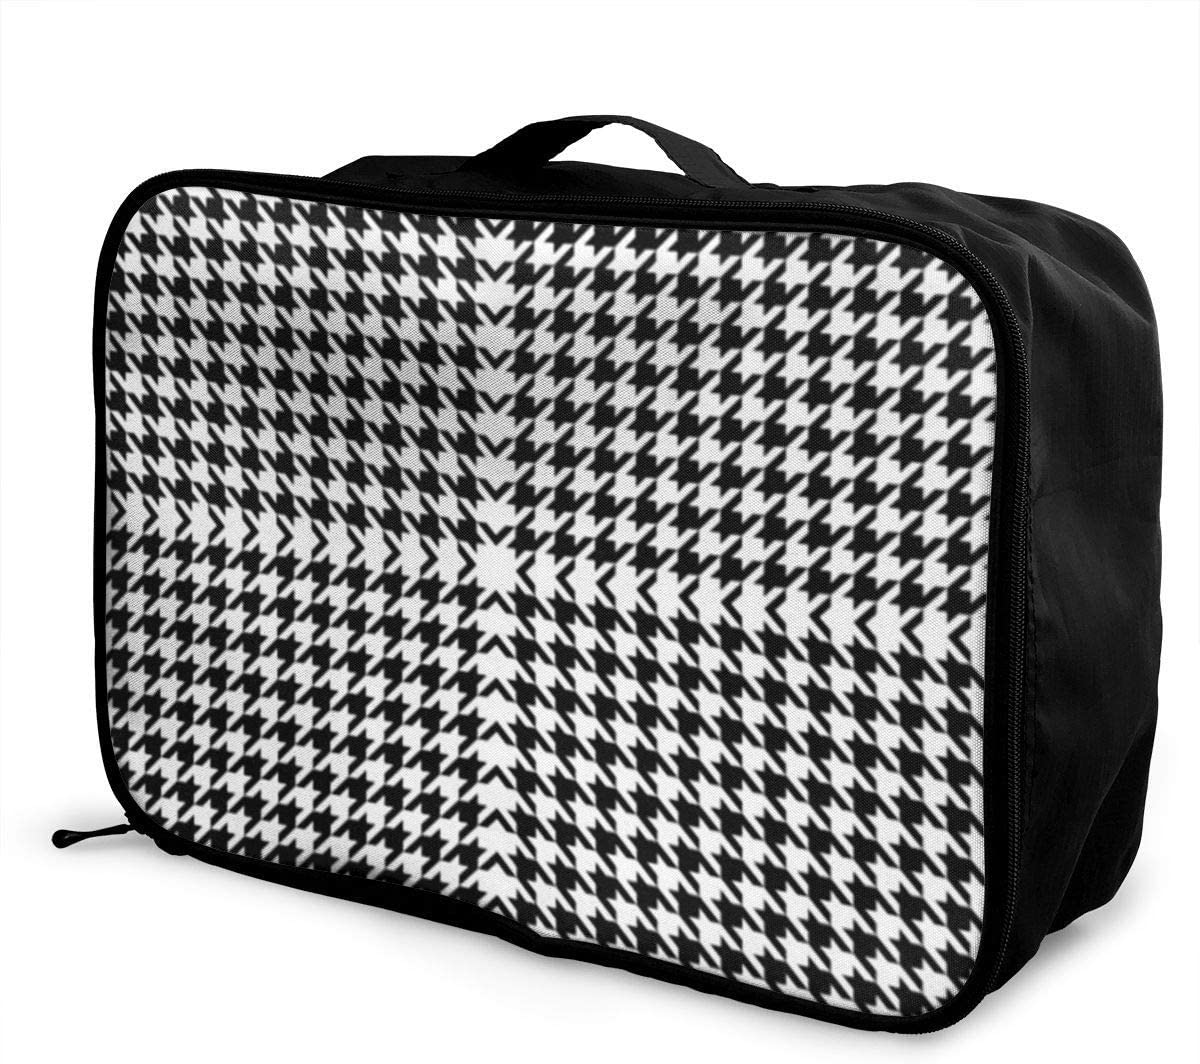 Black And White Houndstooth Travel Fashion Lightweight Large Capacity Duffel Portable Waterproof Foldable Storage Carry Luggage Tote Bag